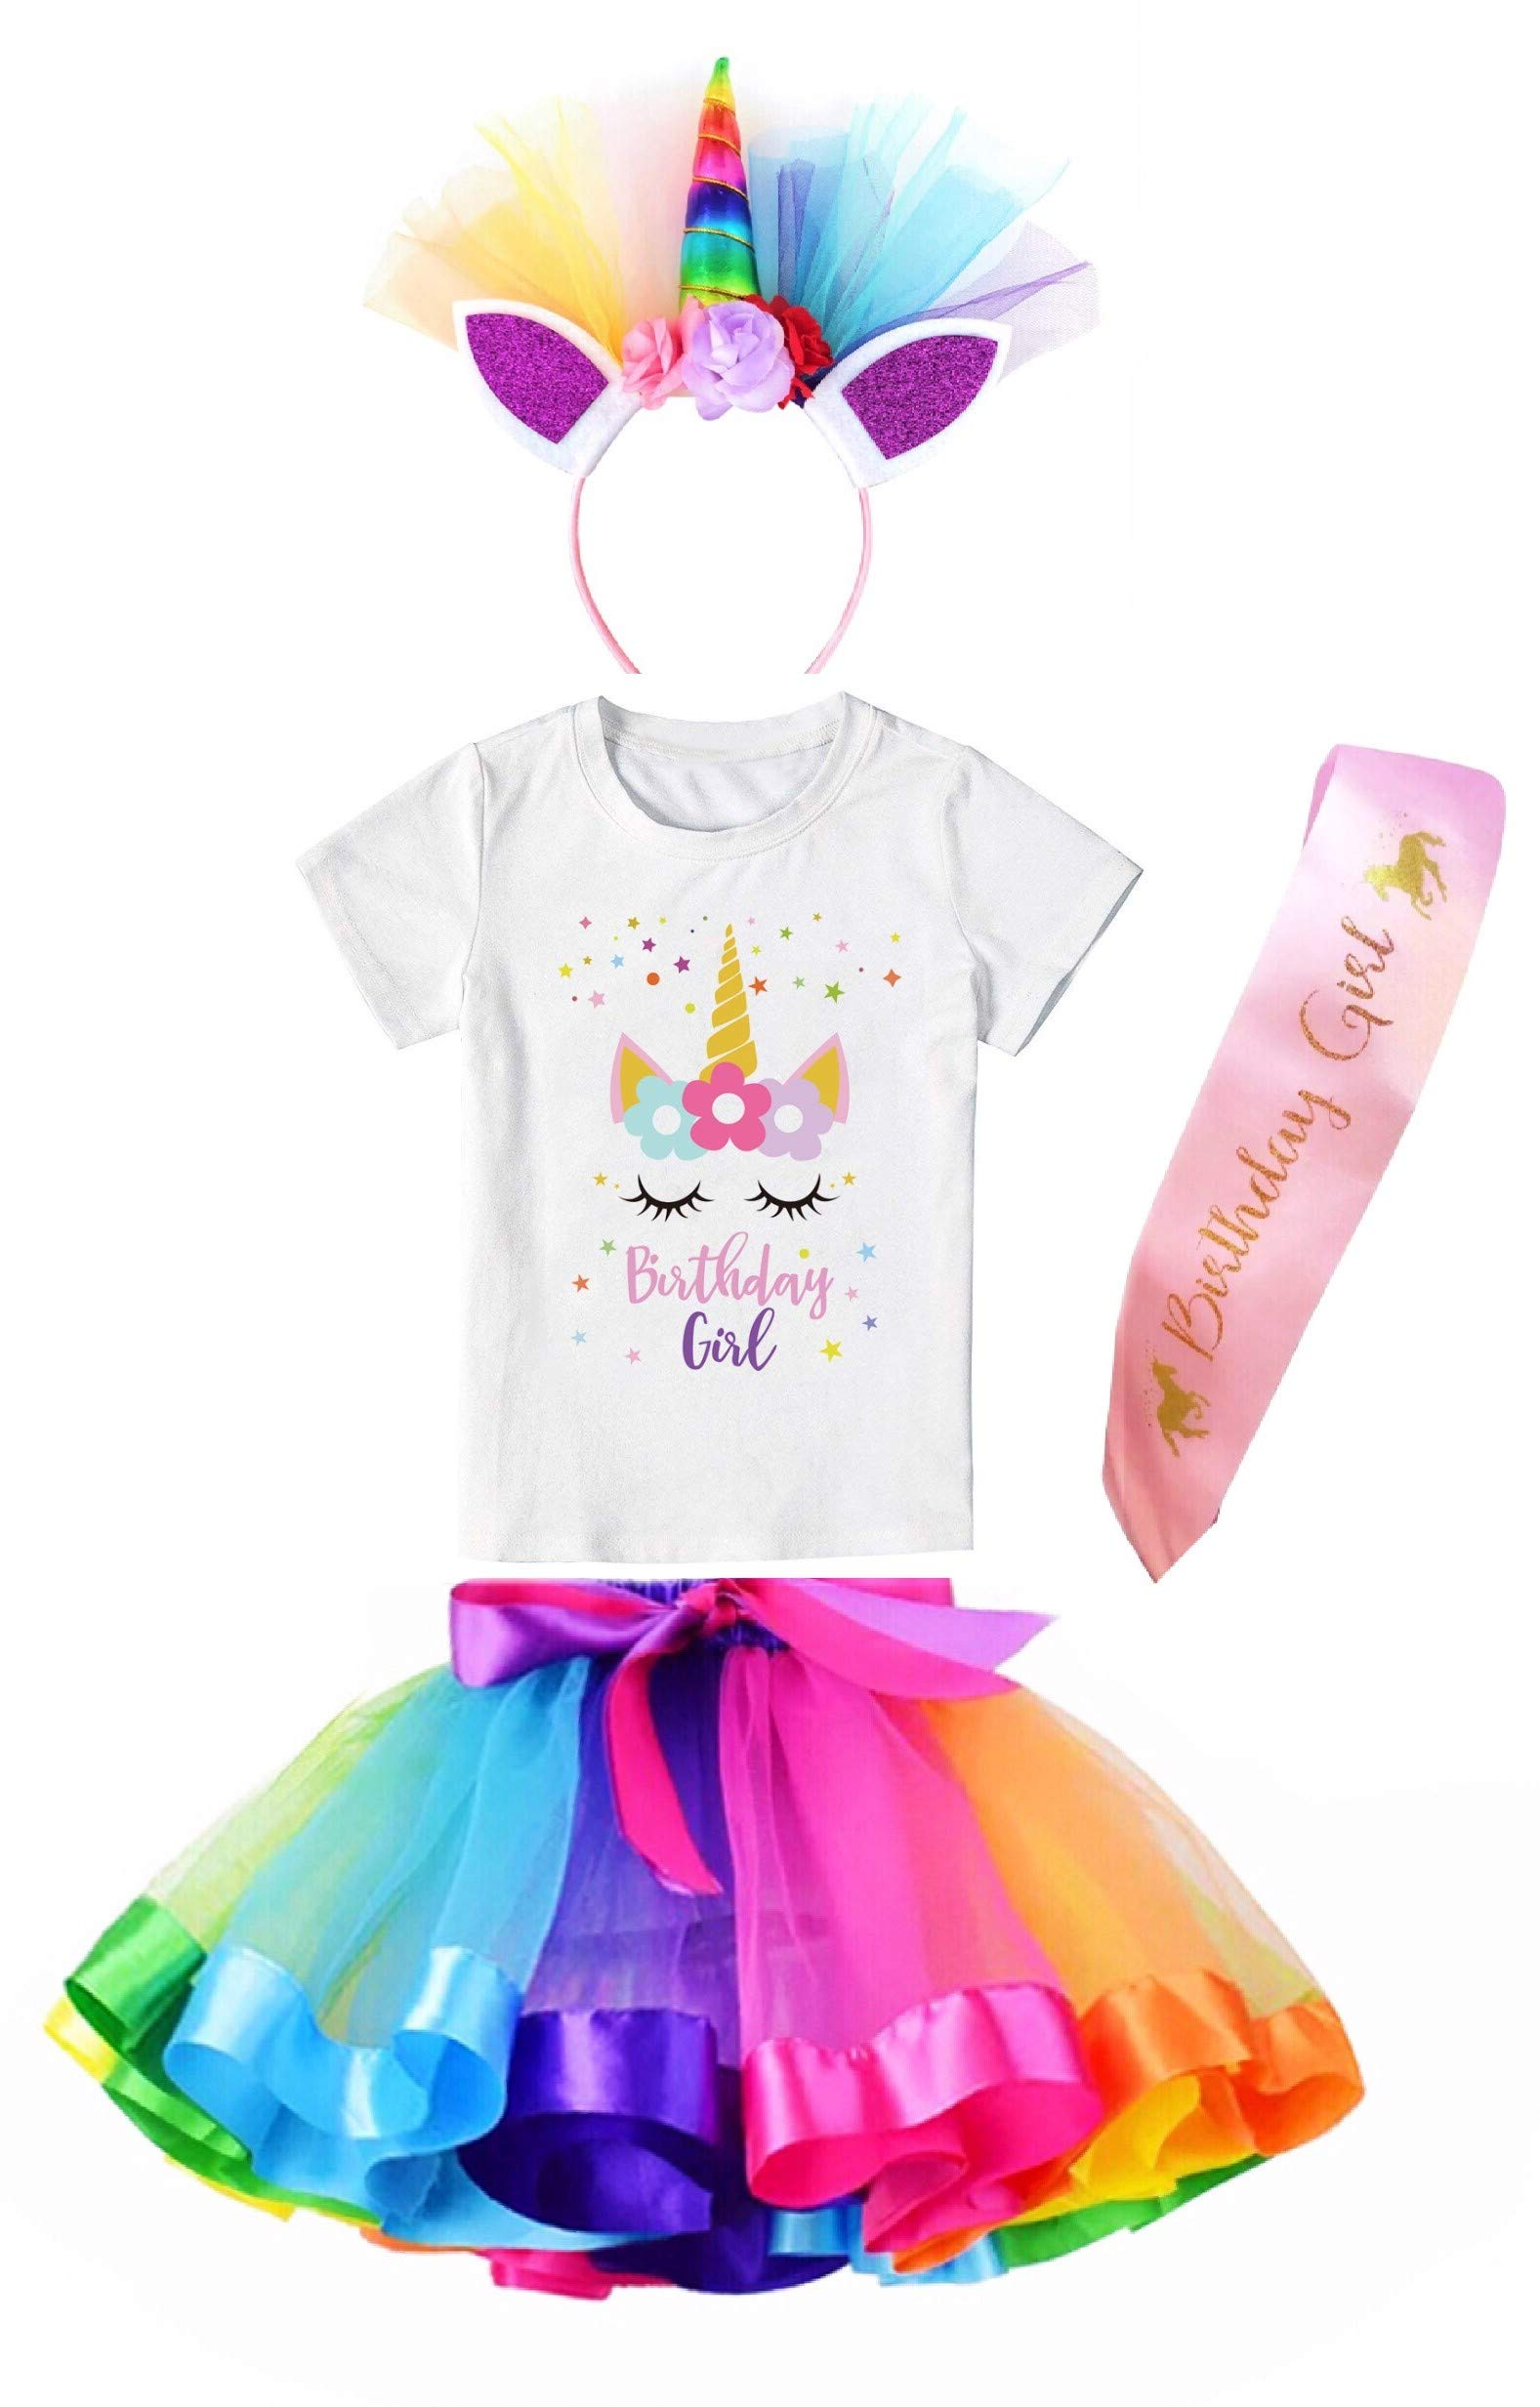 Girls Costume Rainbow Tutu Skirt with Unicorn Star Birthday Tshirt, Headband & Satin Sash 3